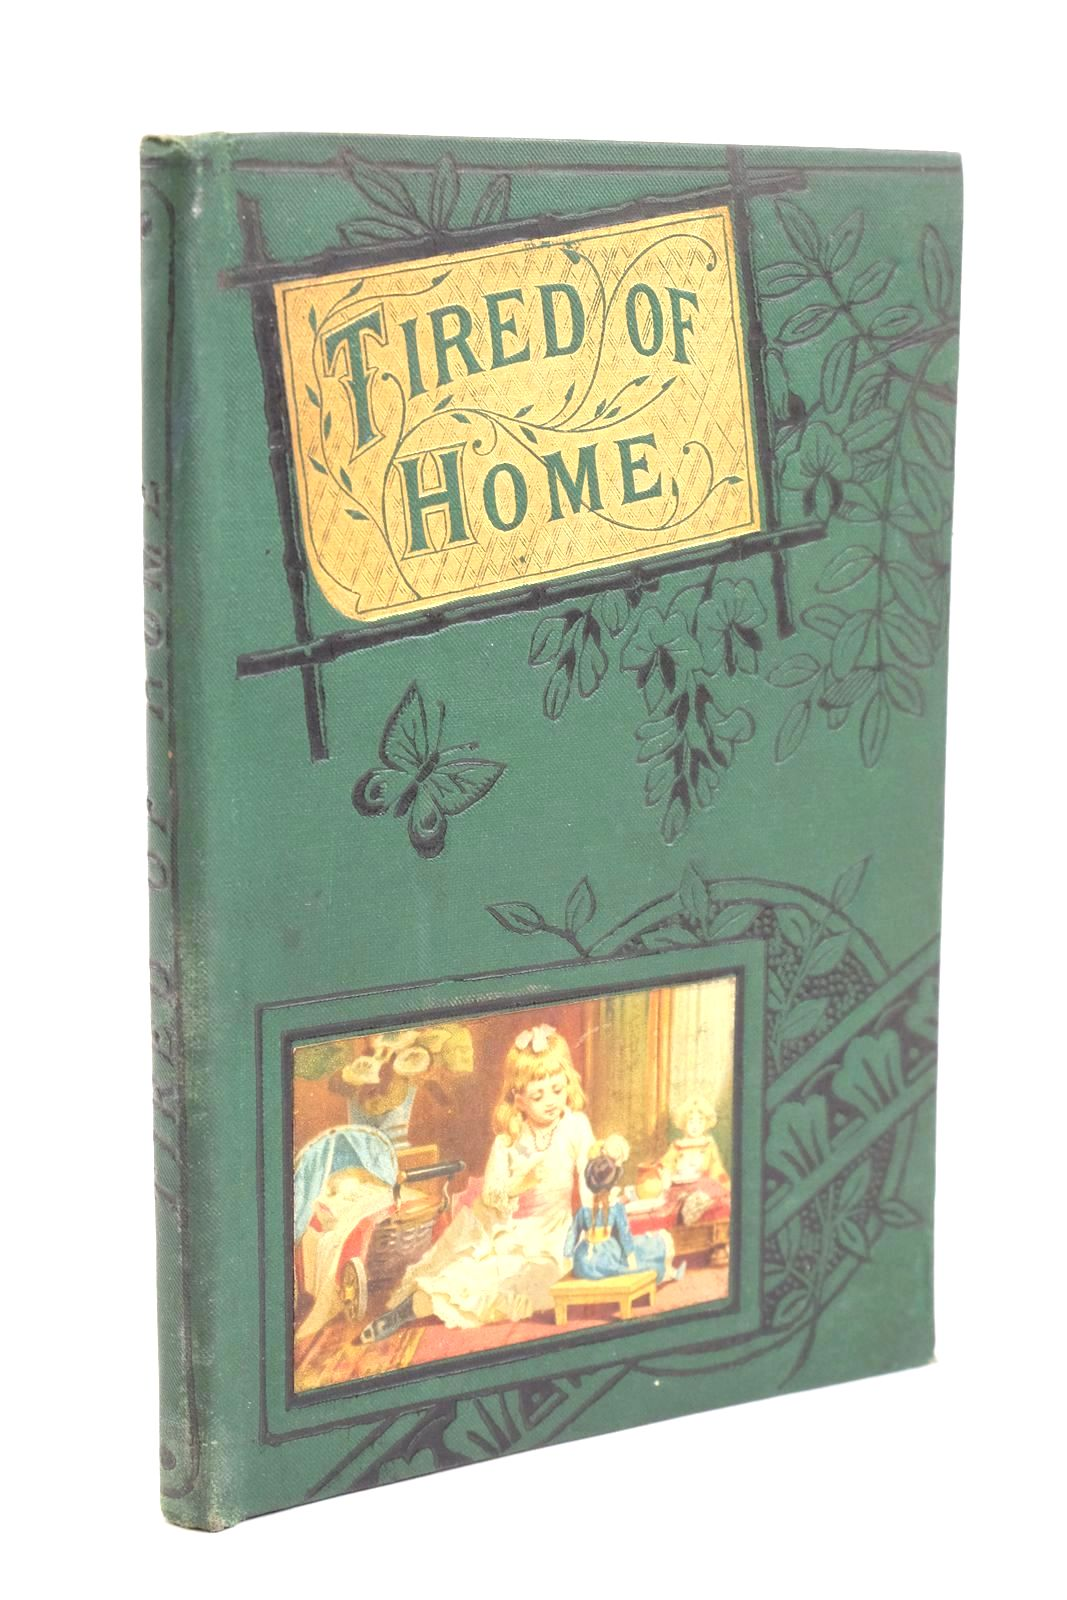 Photo of TIRED OF HOME published by The Religious Tract Society (STOCK CODE: 1321134)  for sale by Stella & Rose's Books